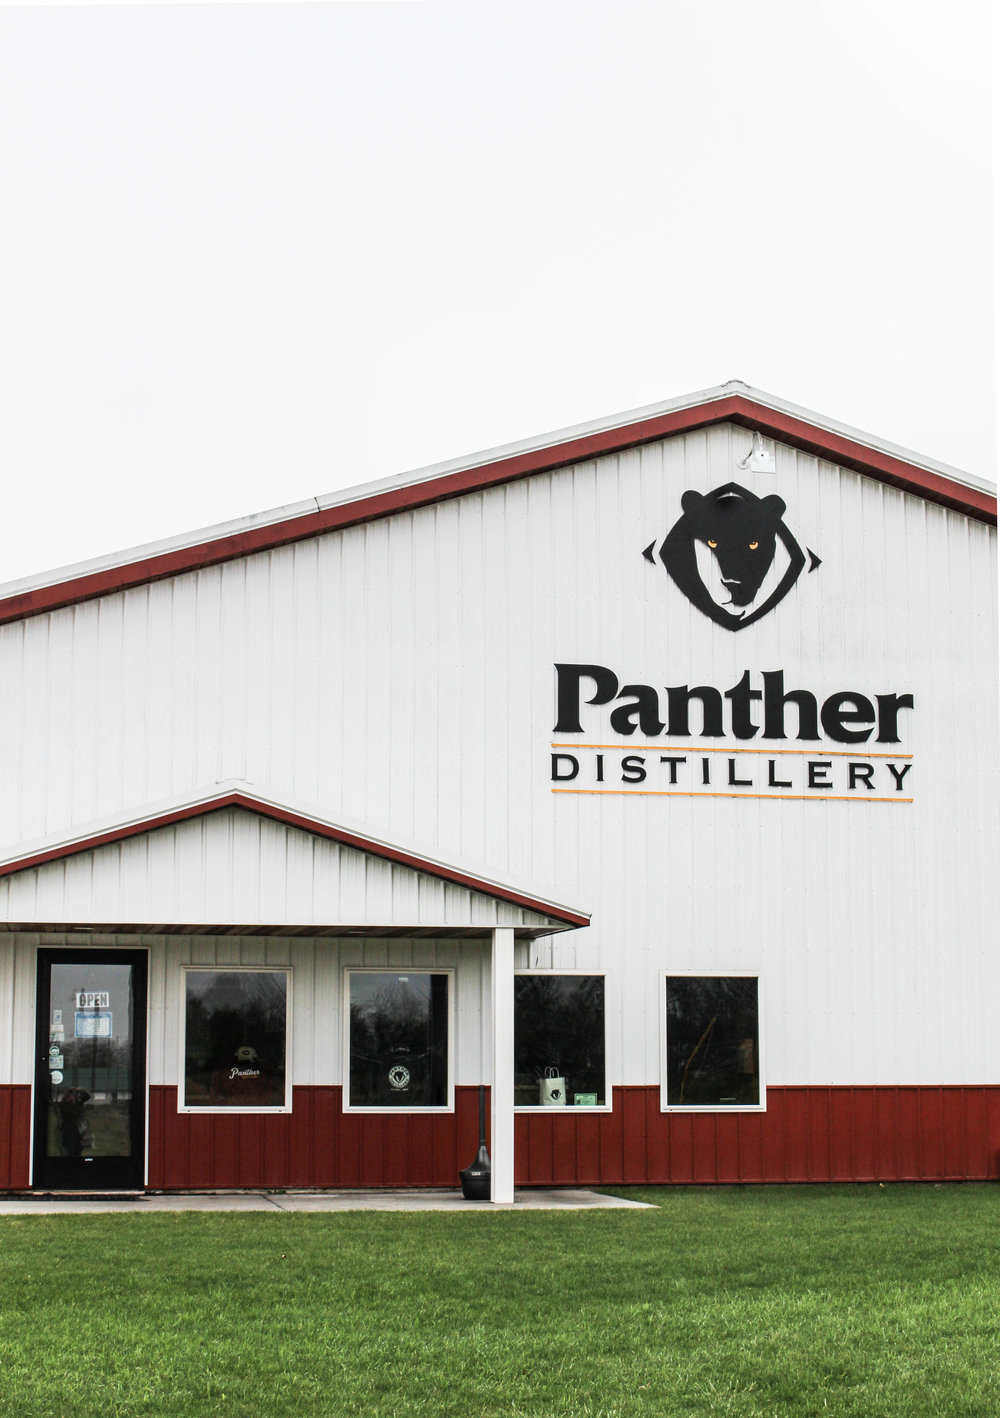 Panther Distillery_Building.jpg.jpeg